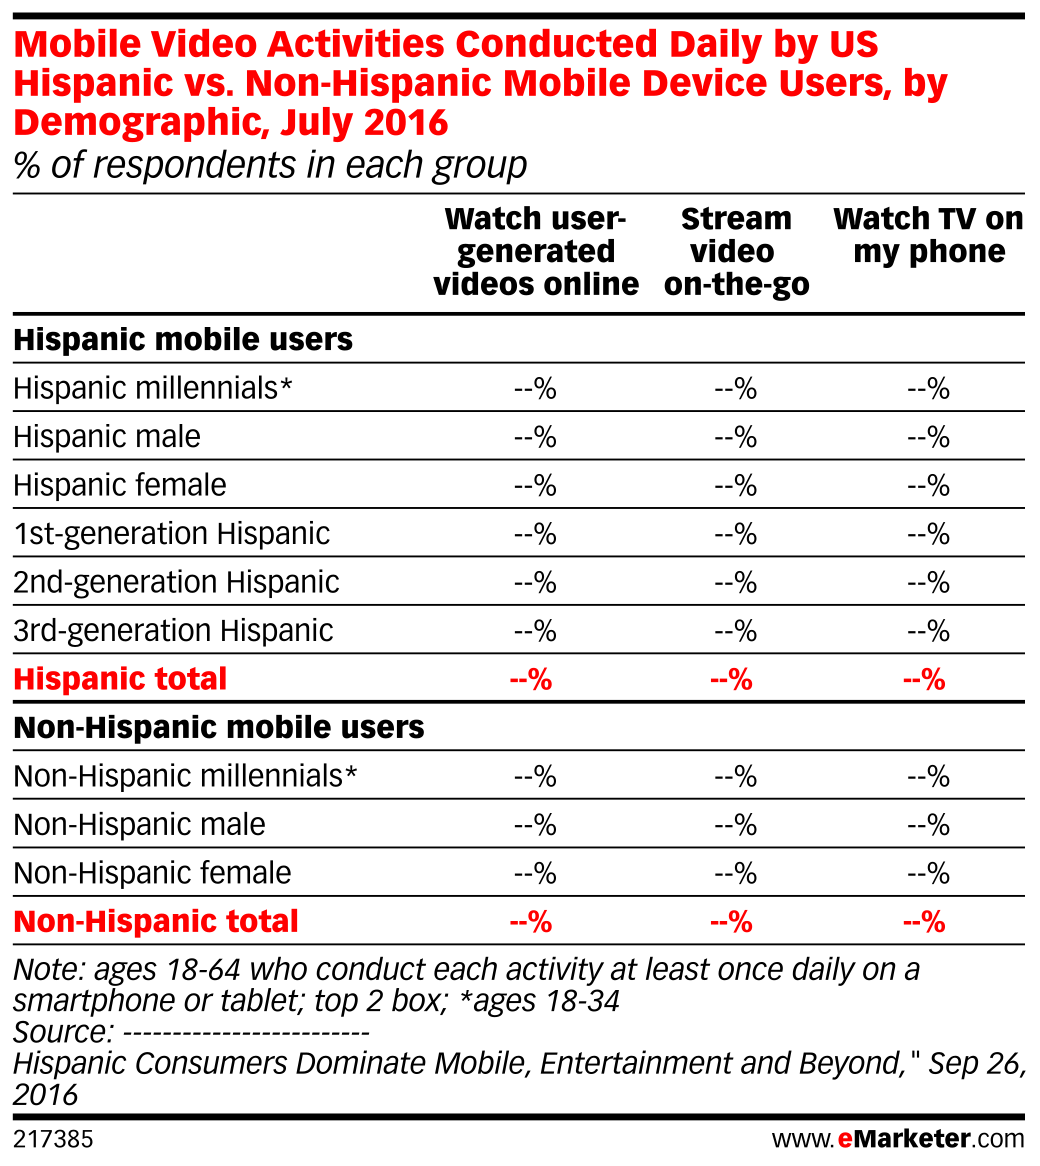 Mobile Video Activities Conducted Daily by US Hispanic vs. Non-Hispanic Mobile Device Users, by Demographic, July 2016 (% of respondents in each group)